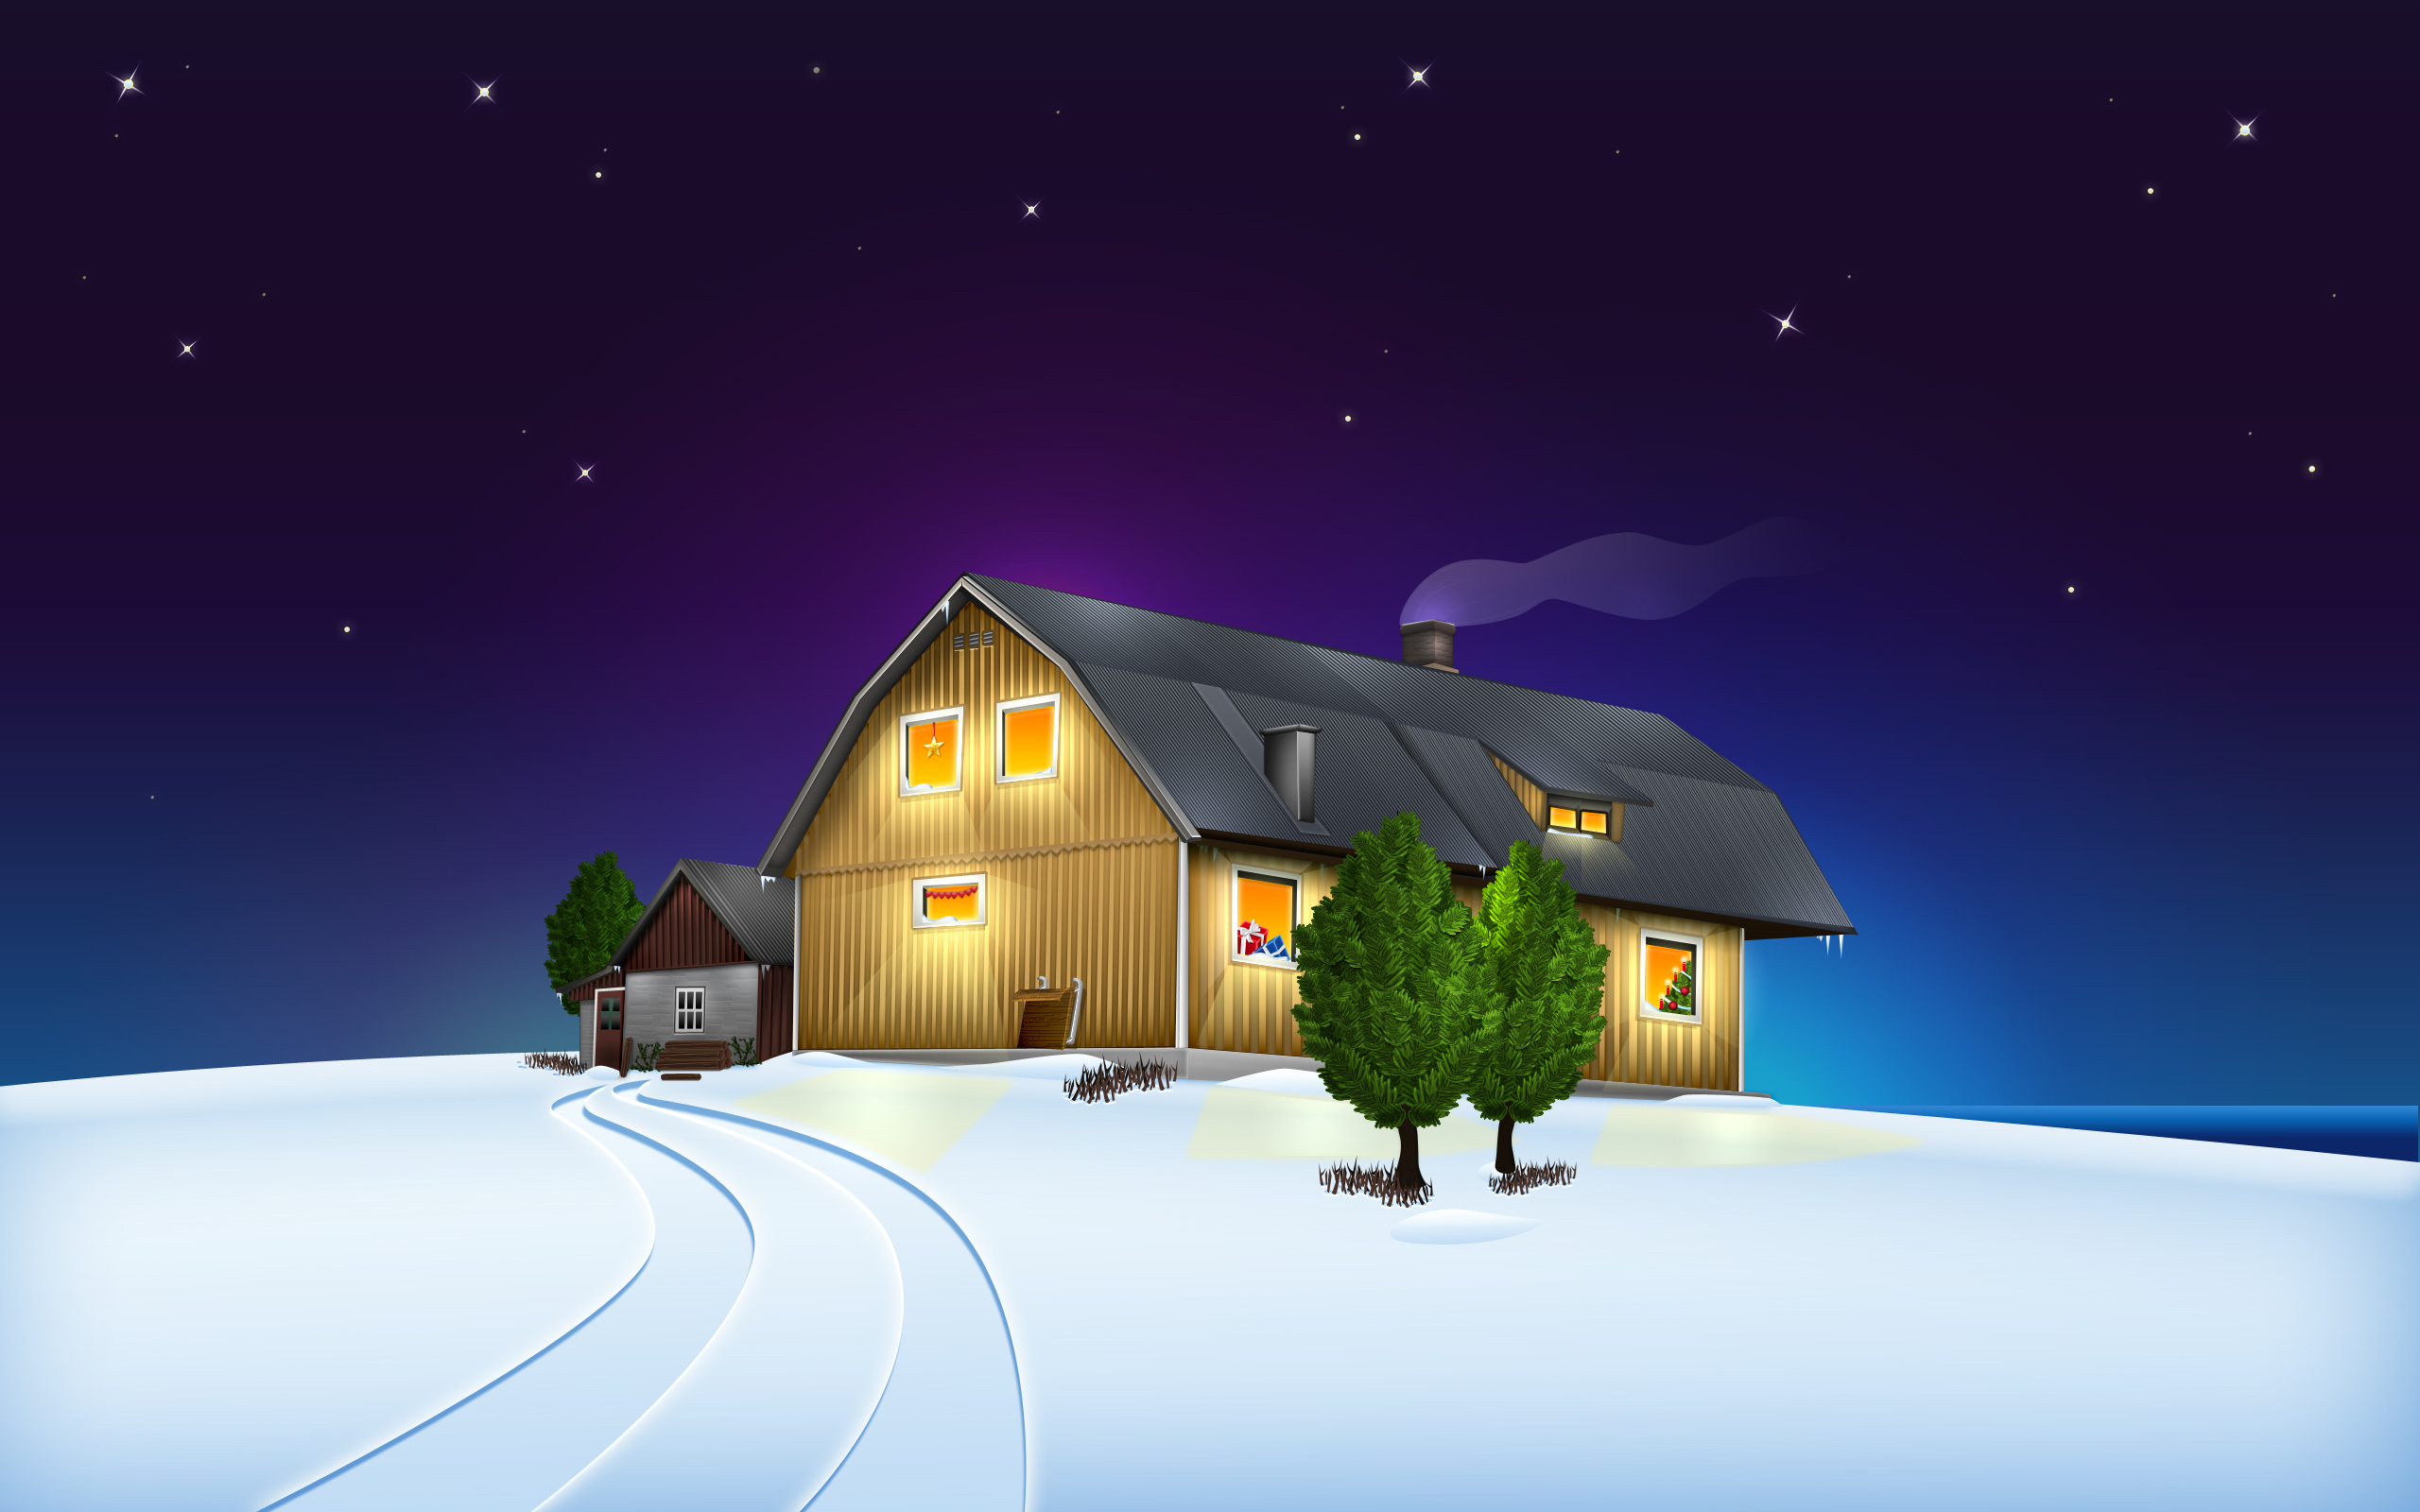 2560x1600 xmas at home desktop pc and mac wallpaper for Wallpaper home animation